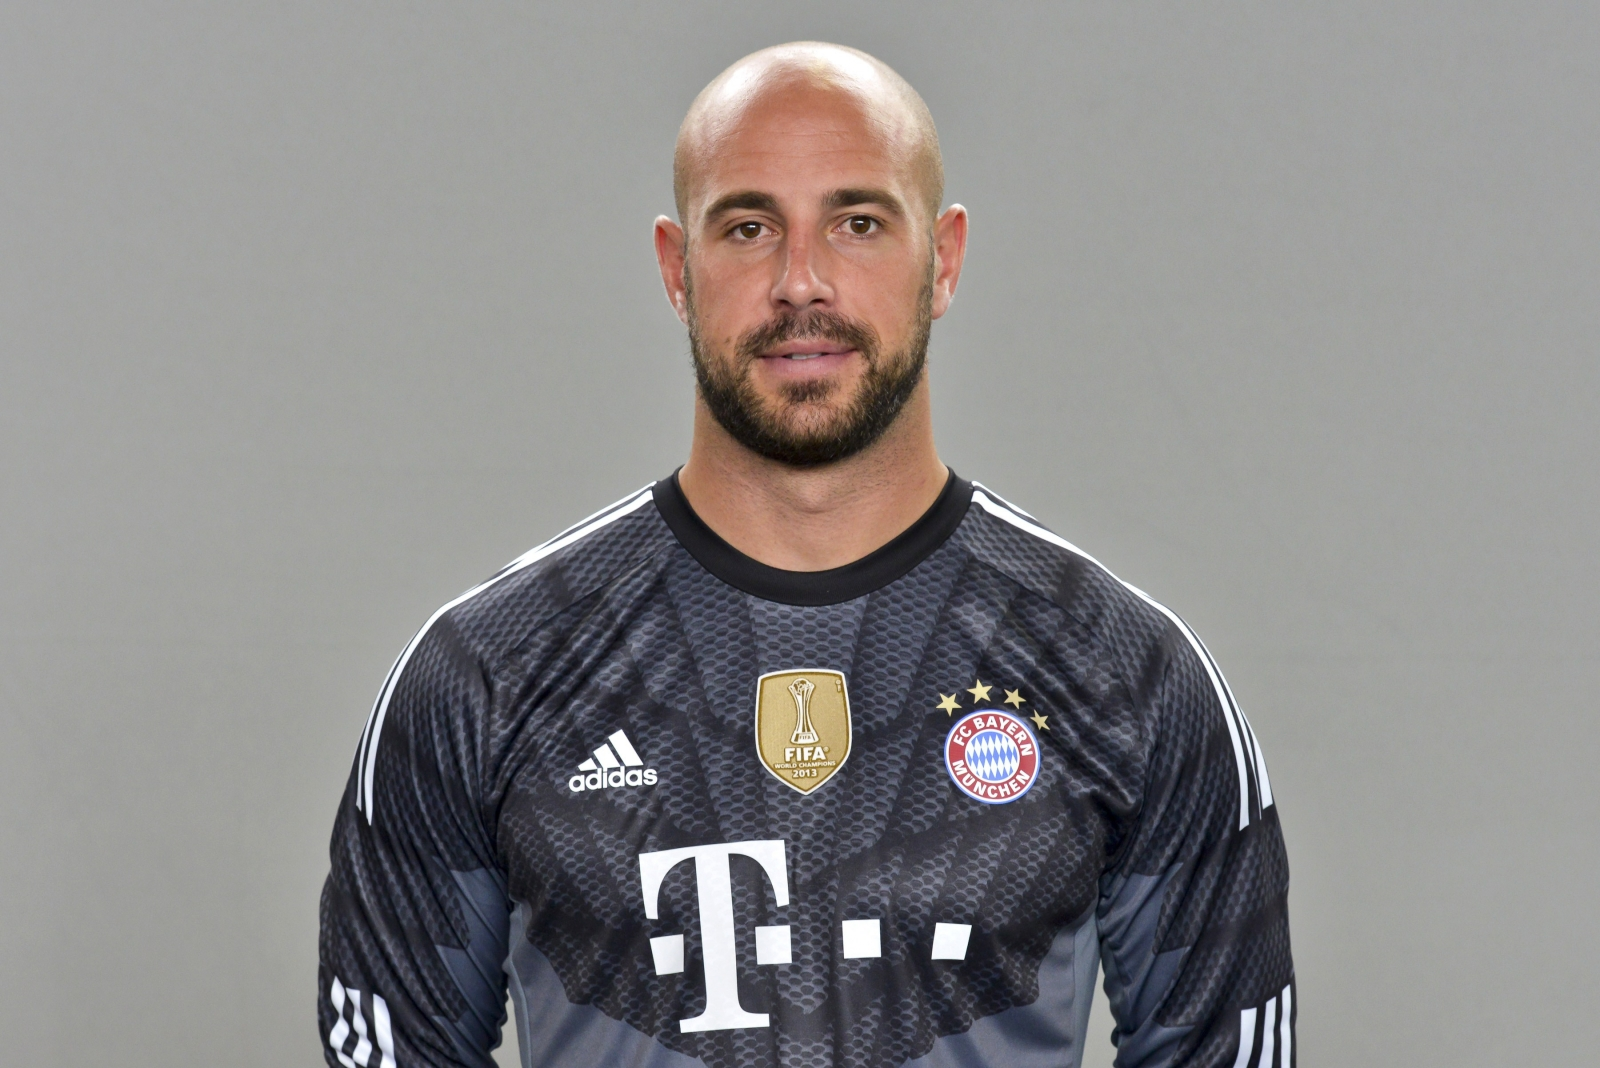 Pepe Reina claims move to 'major club' Bayern Munich preferable to ...